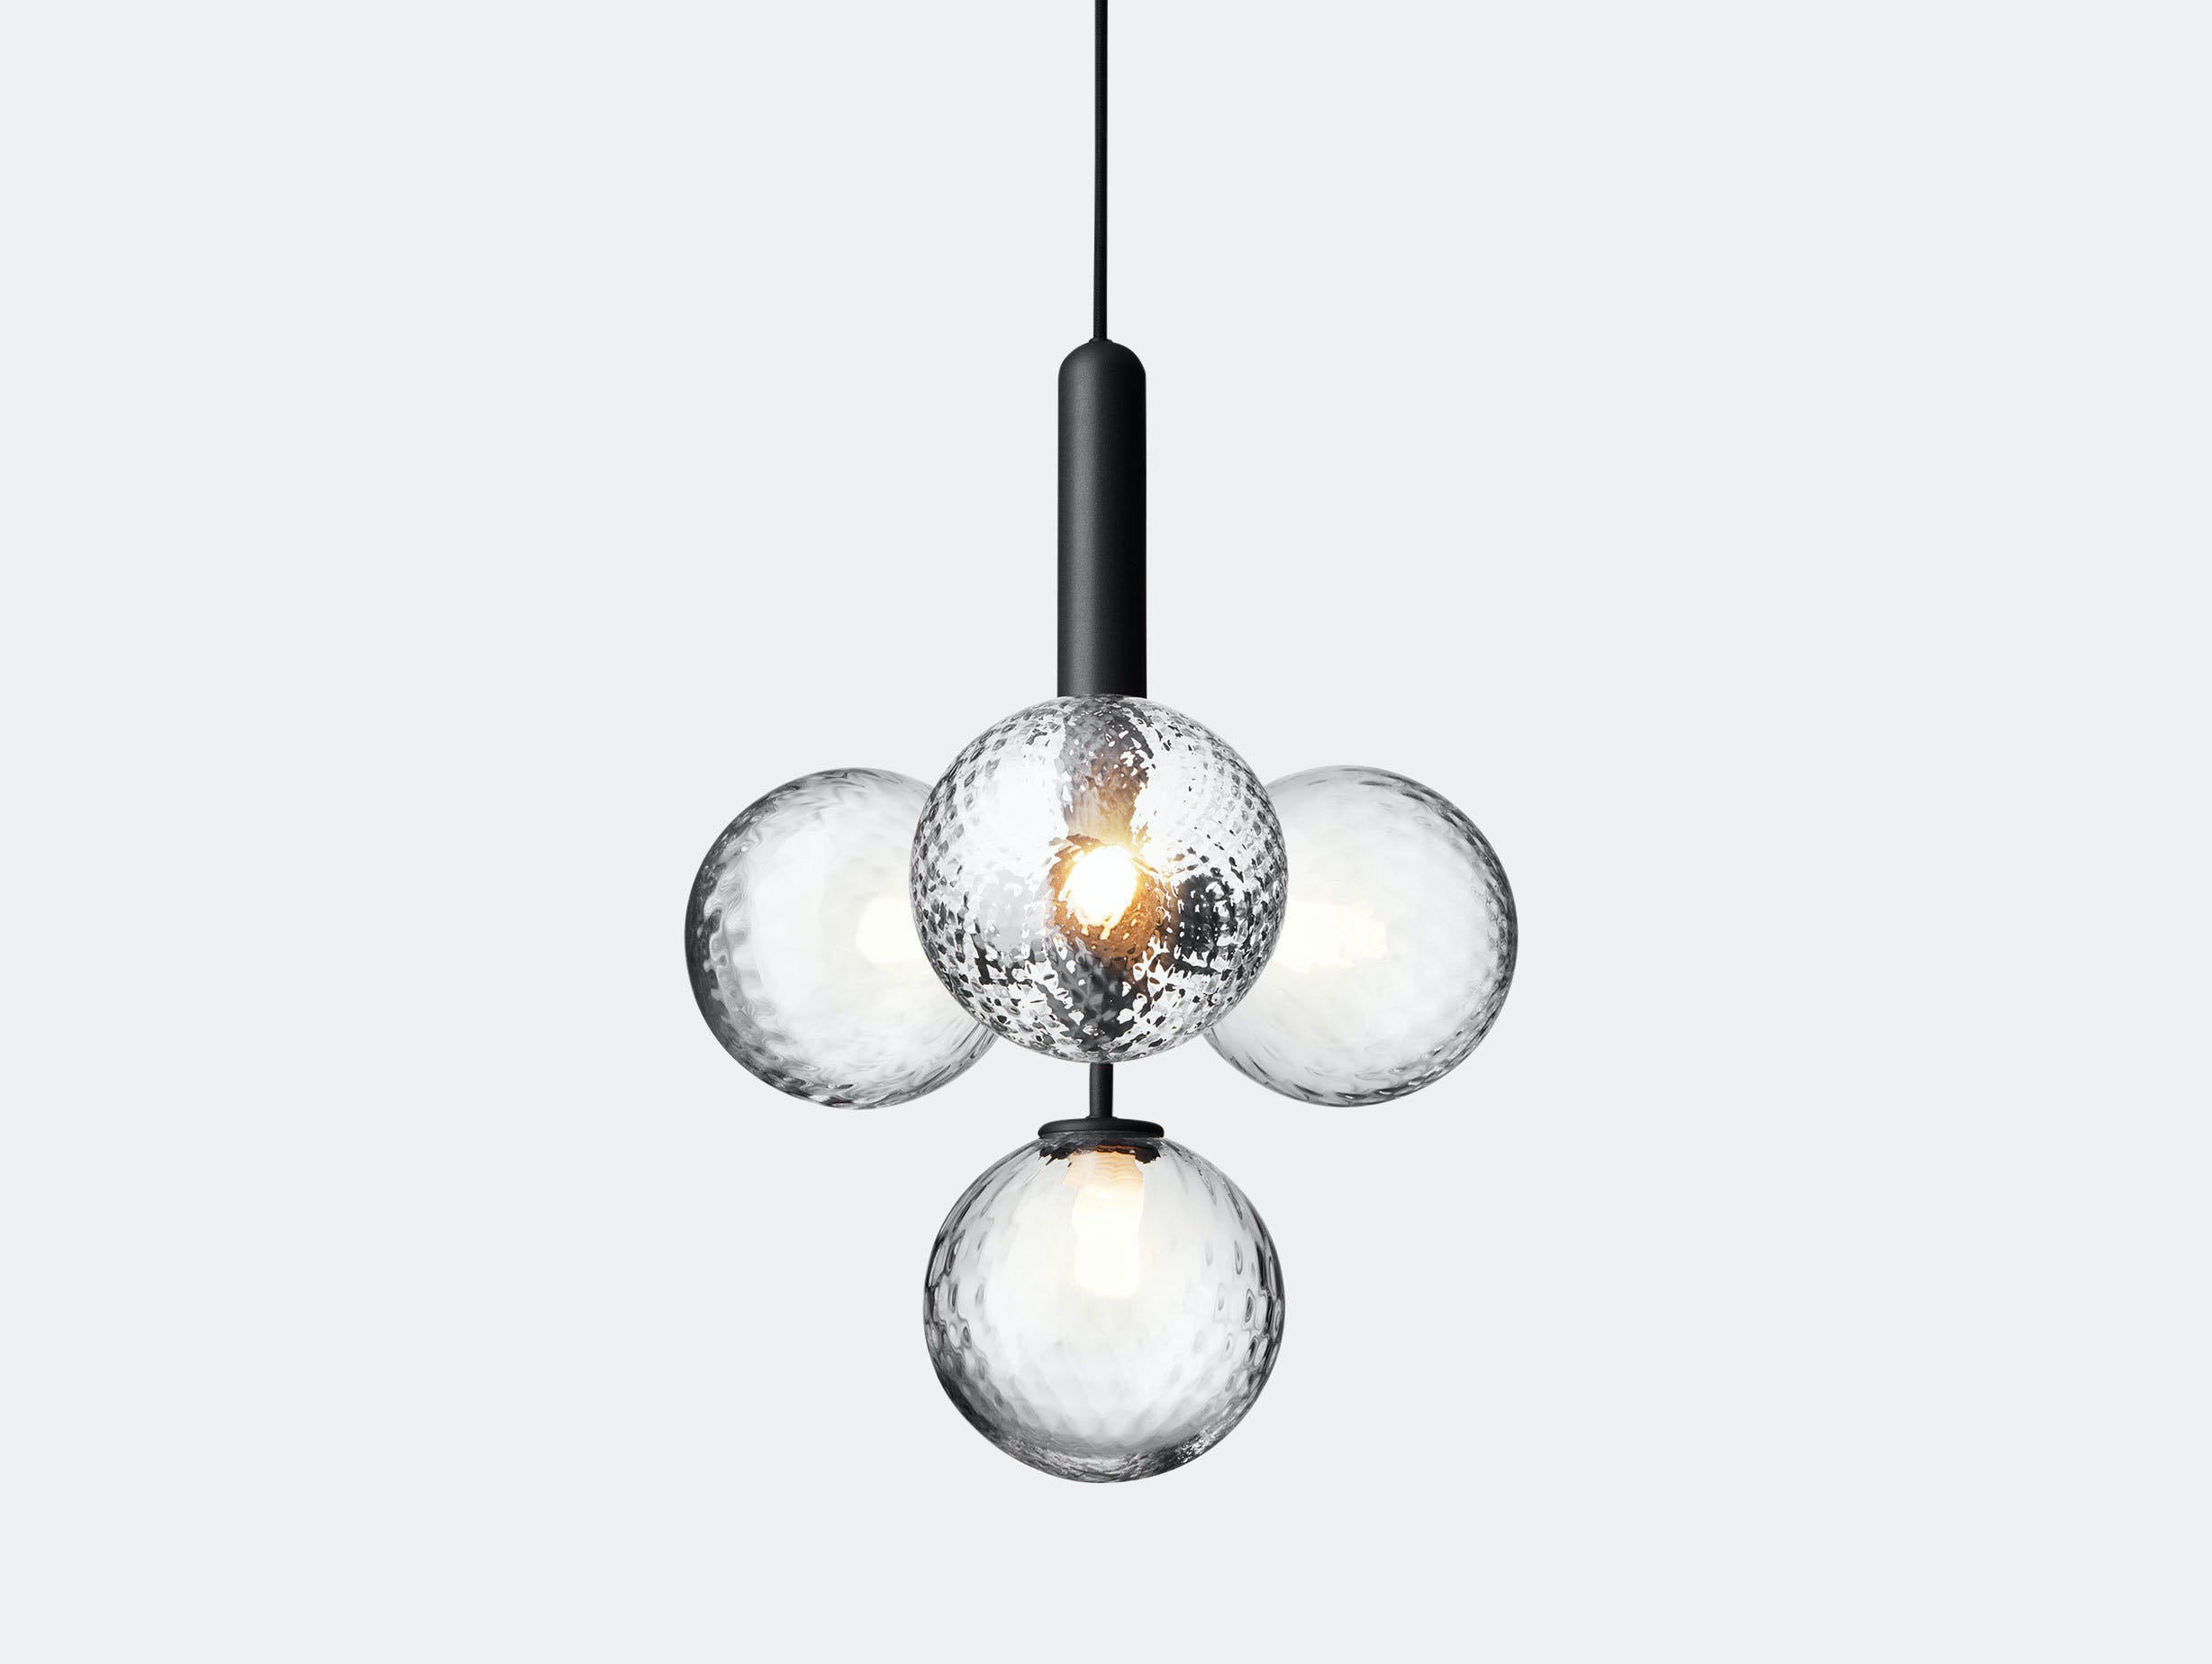 Nuura Miira 4 Pendant Light Optic Sofie Refer